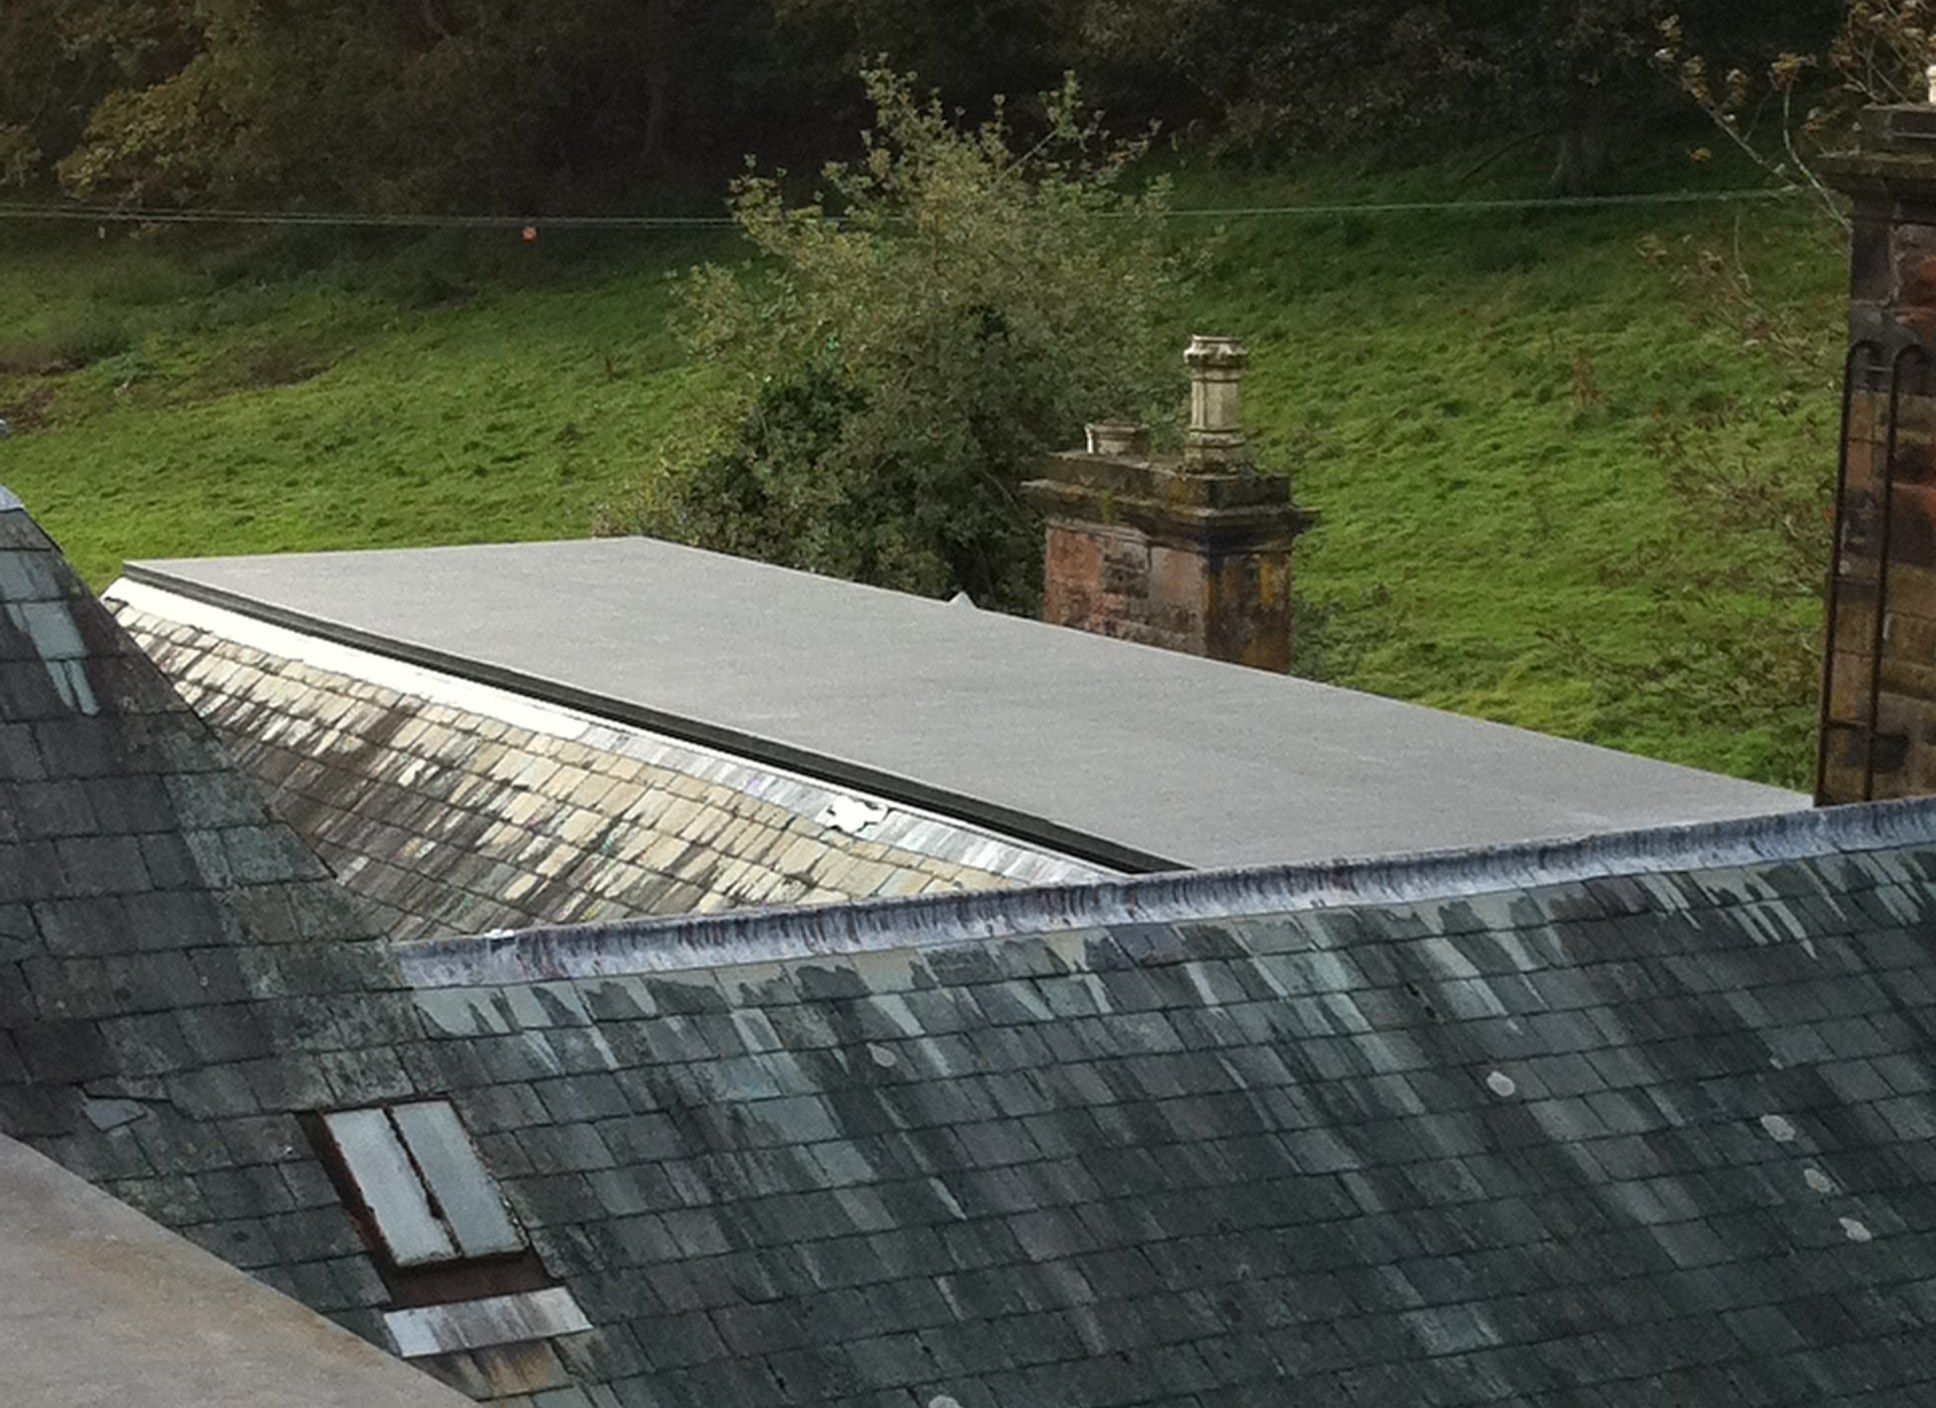 Flat Roofs Repair Replacement By Craftsman Cladding Flat Roof Flat Roof Repair Beautiful Roofs